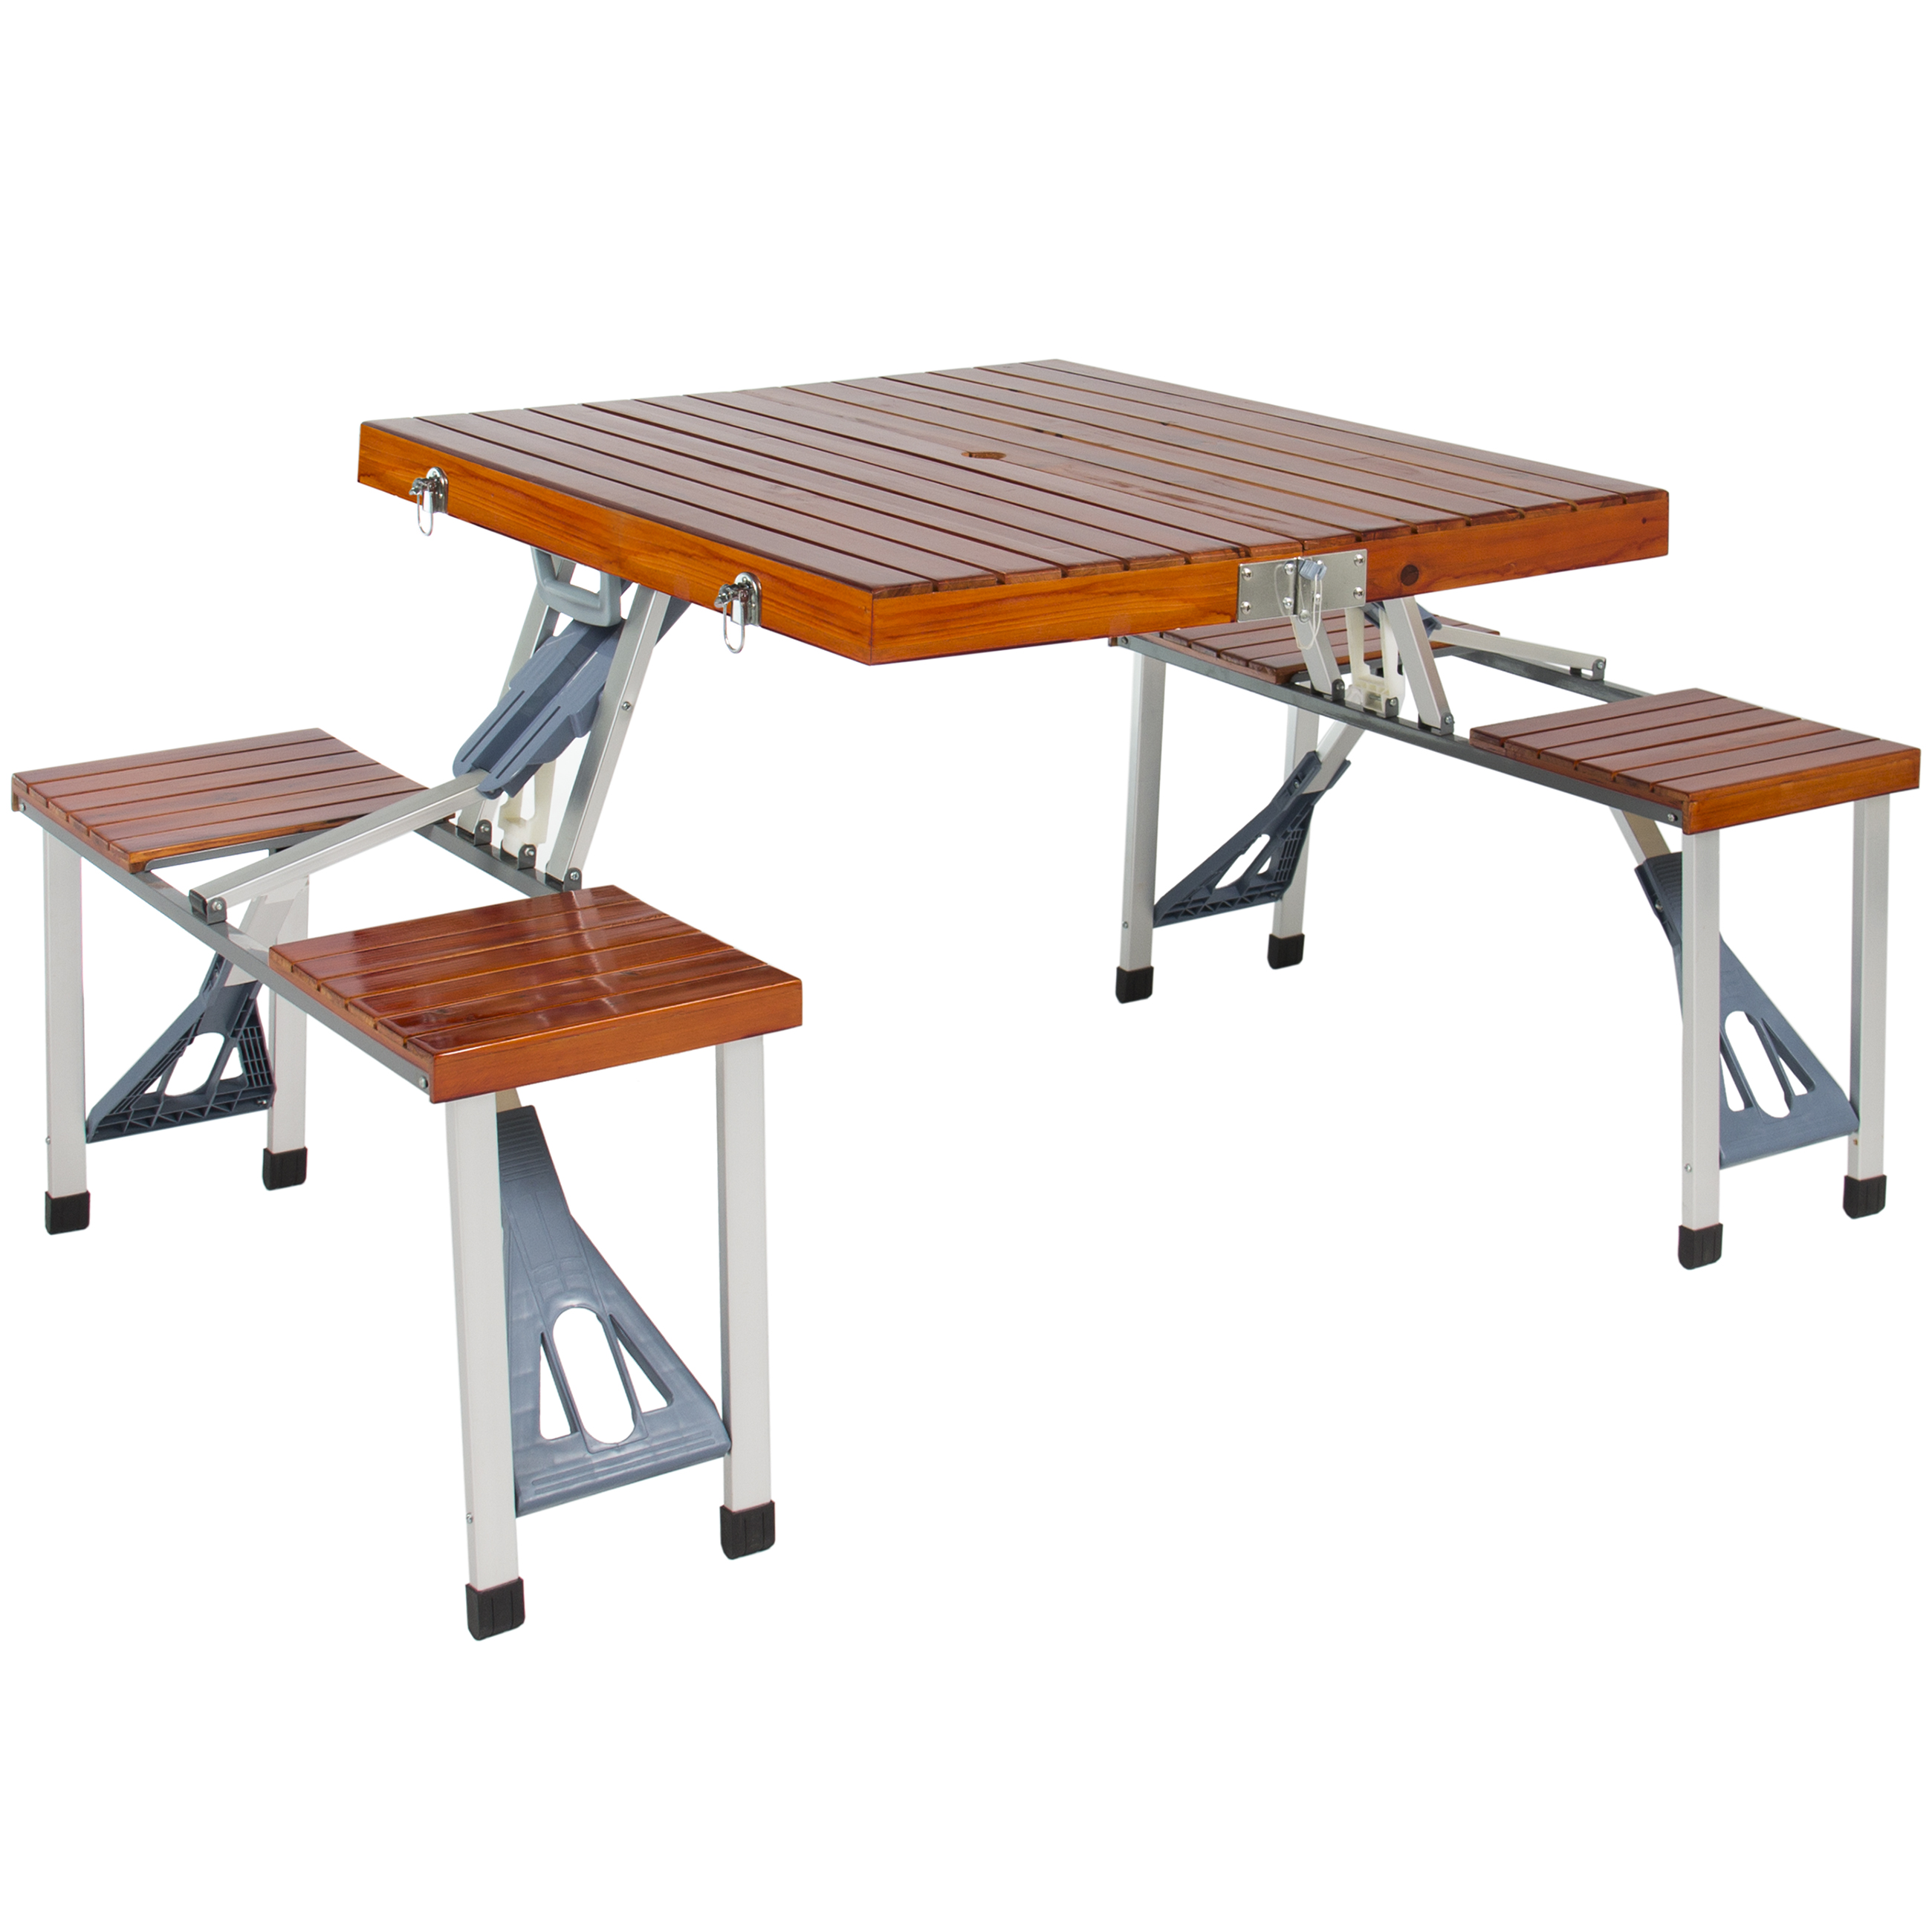 Best Choice Products Wood Folding Picnic Table With Carrying Case Seats 4 by